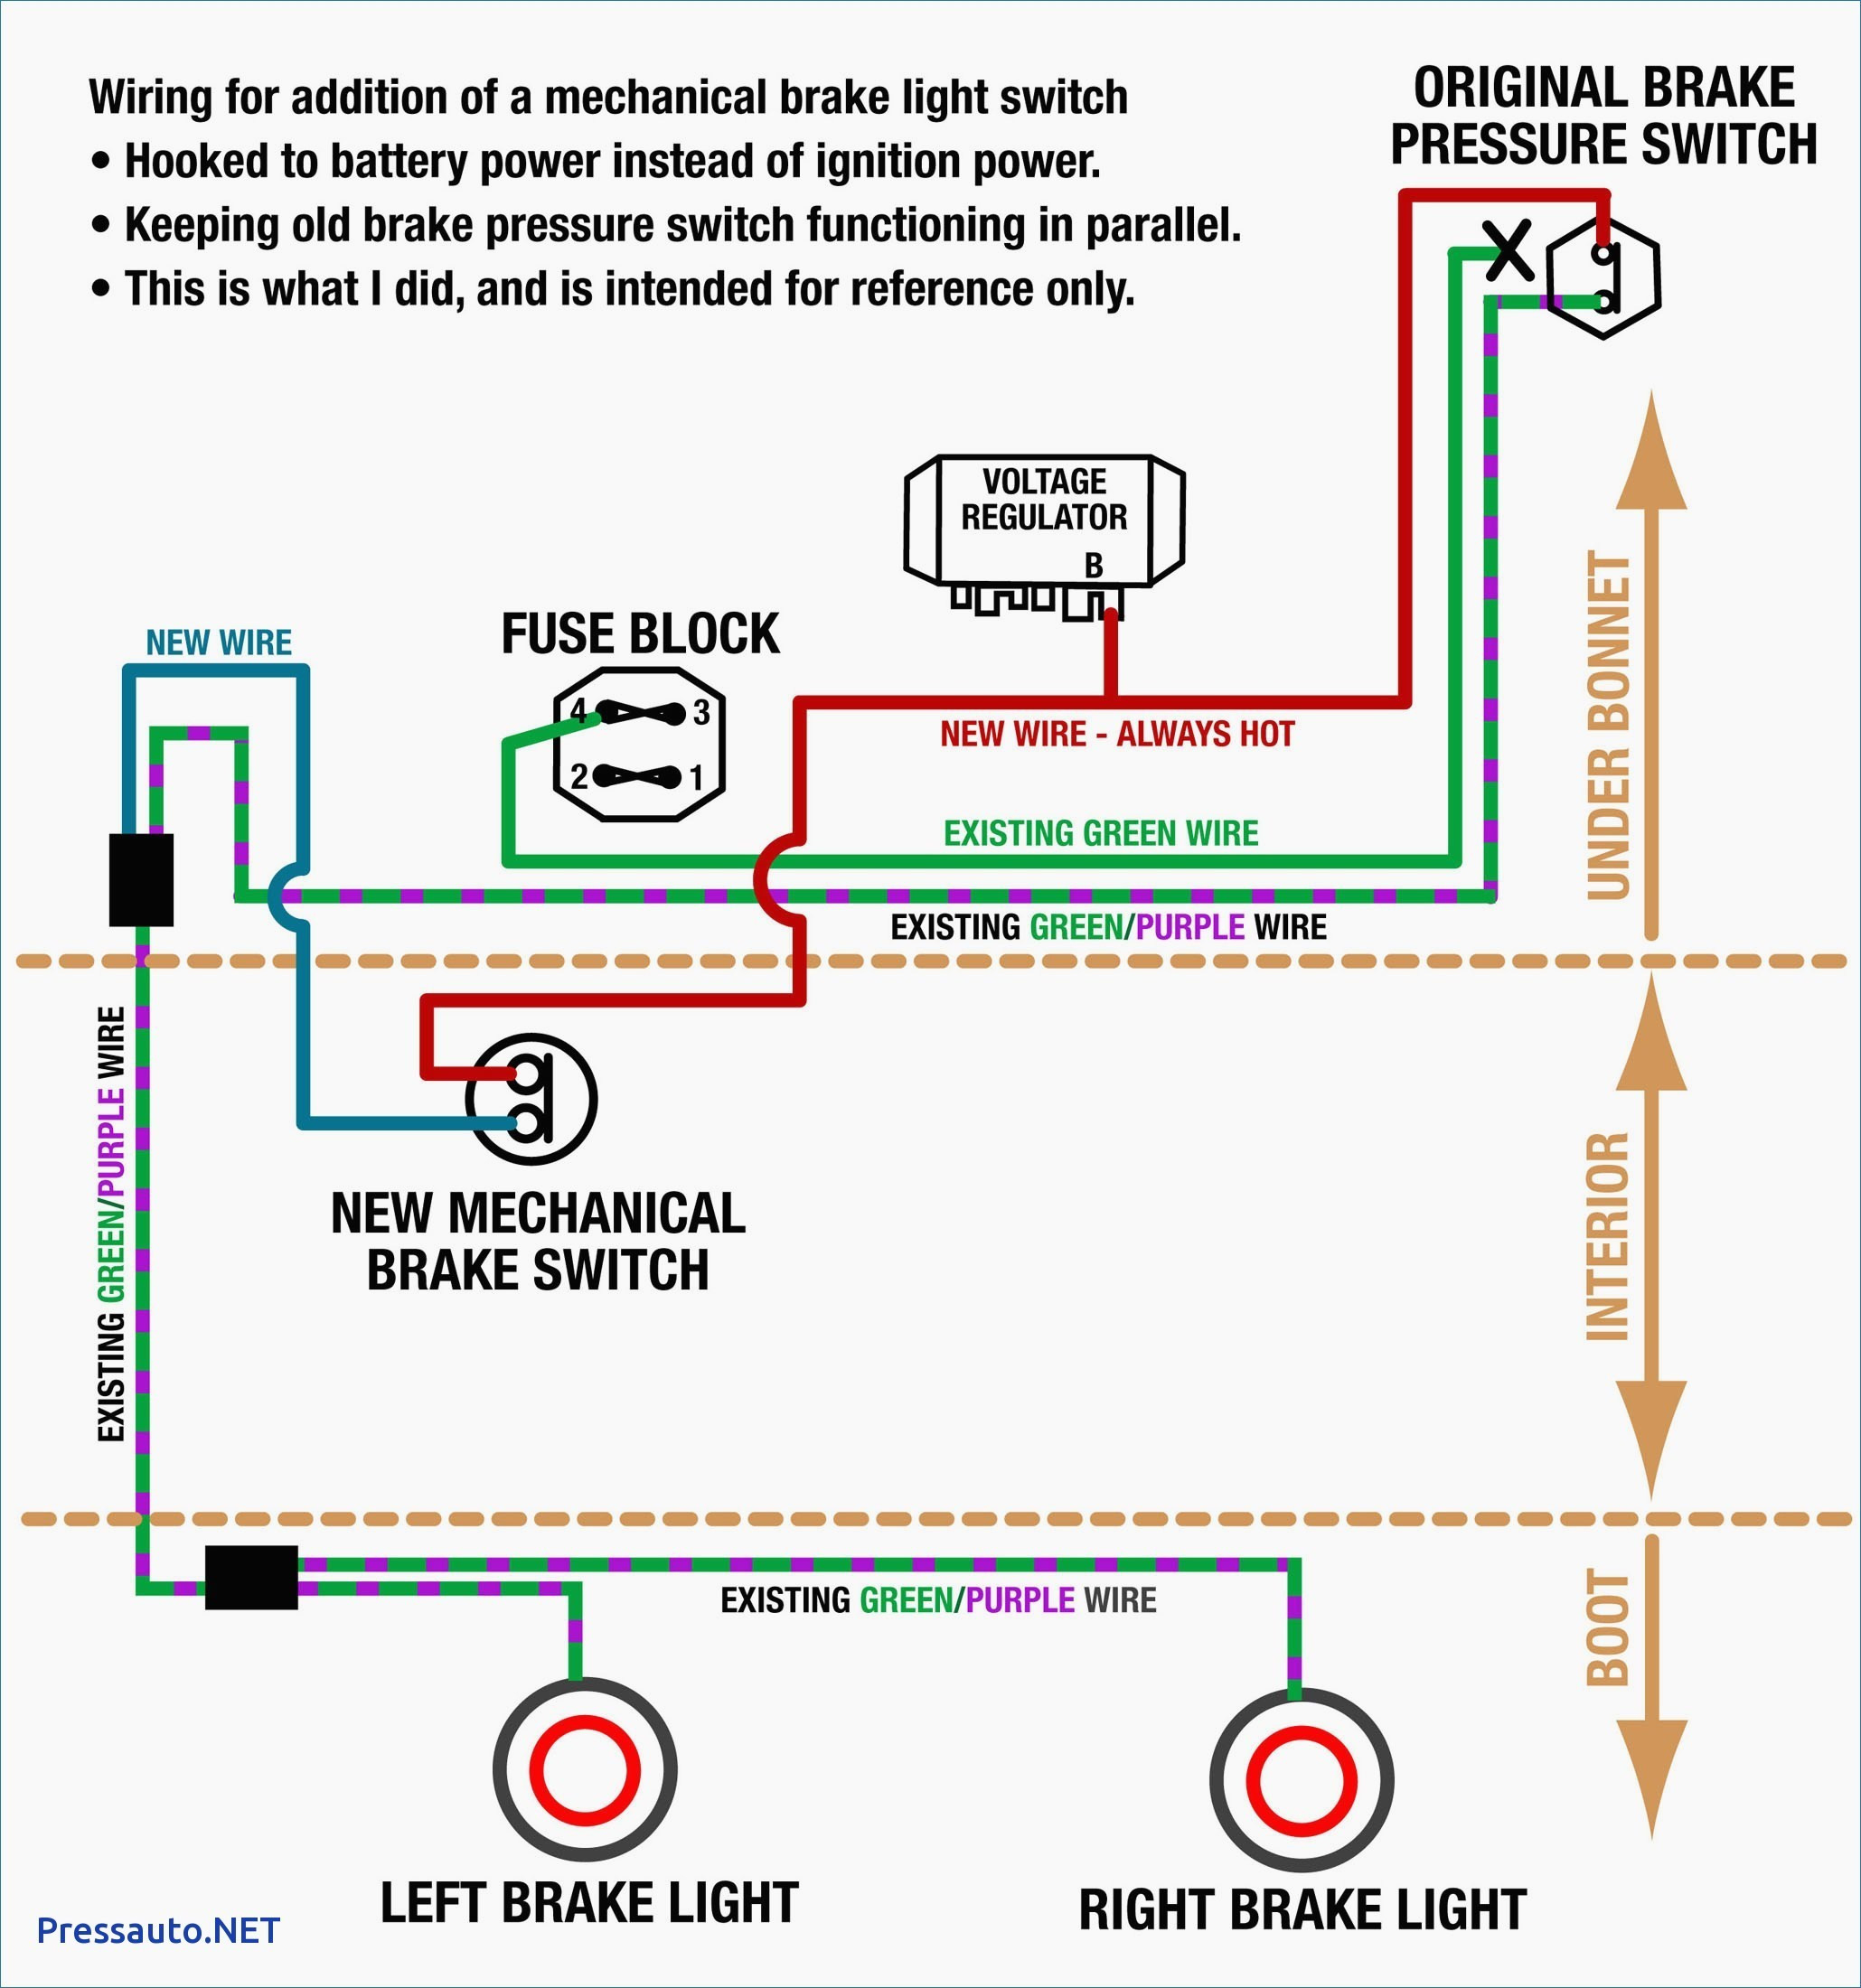 4 Wire Trailer Wiring Diagram Troubleshooting - Wellread - Four Wire Trailer Wiring Diagram